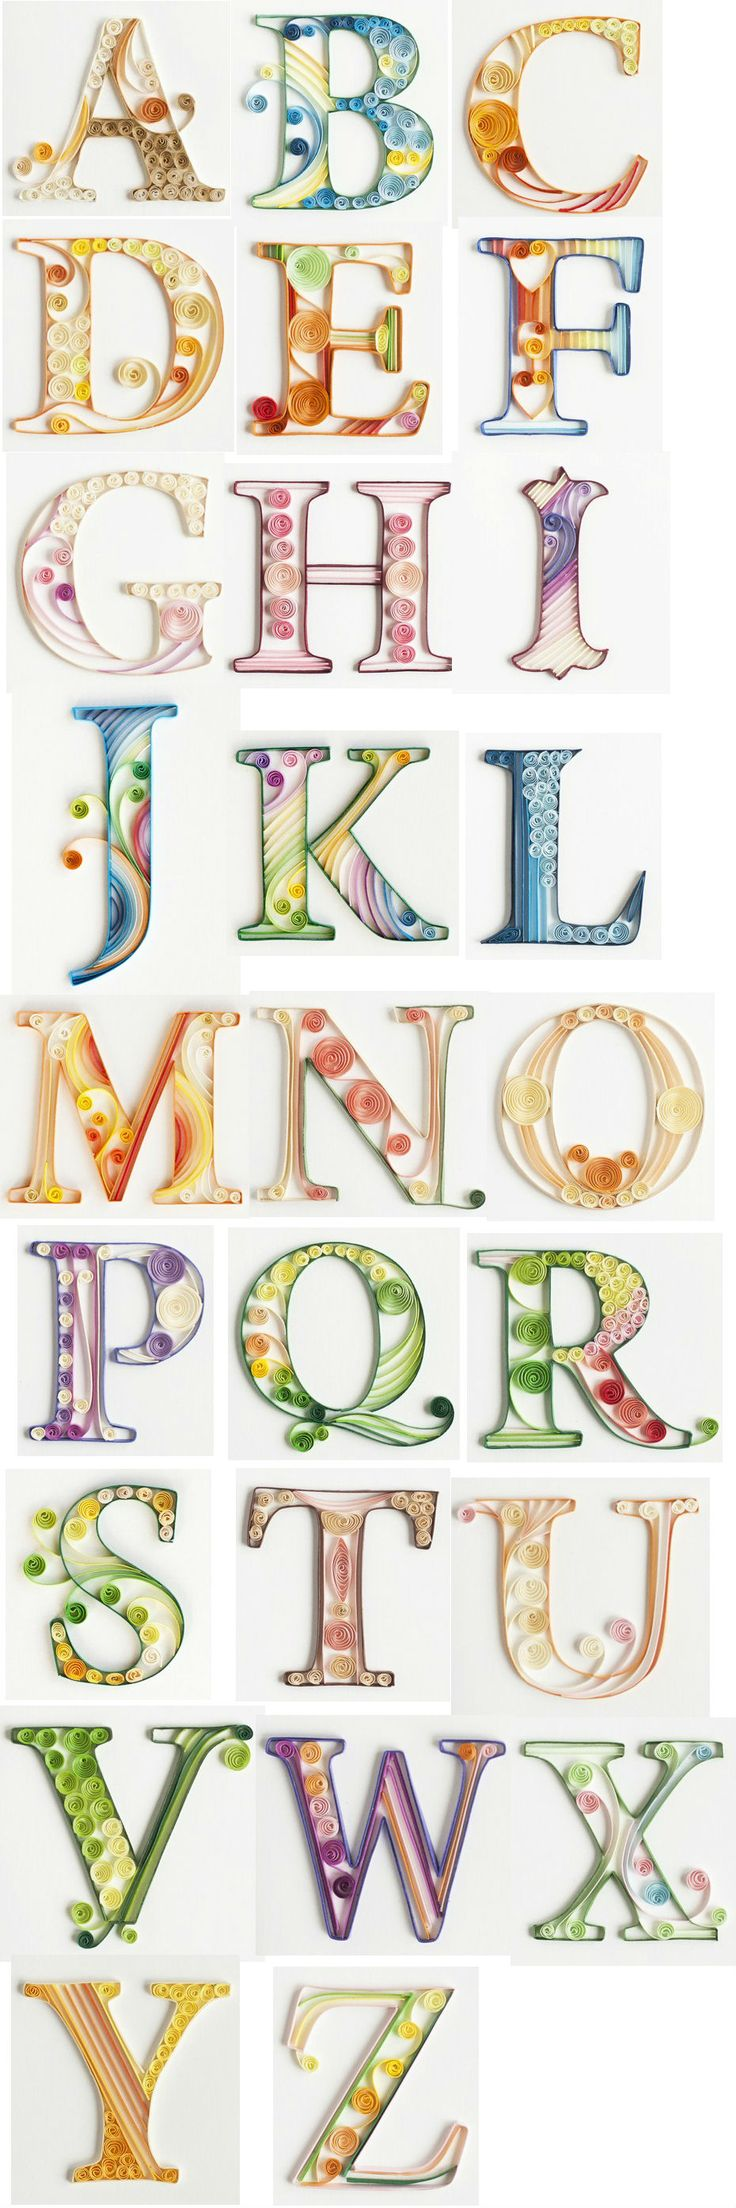 Quilled paper alphabet by QuillingCard